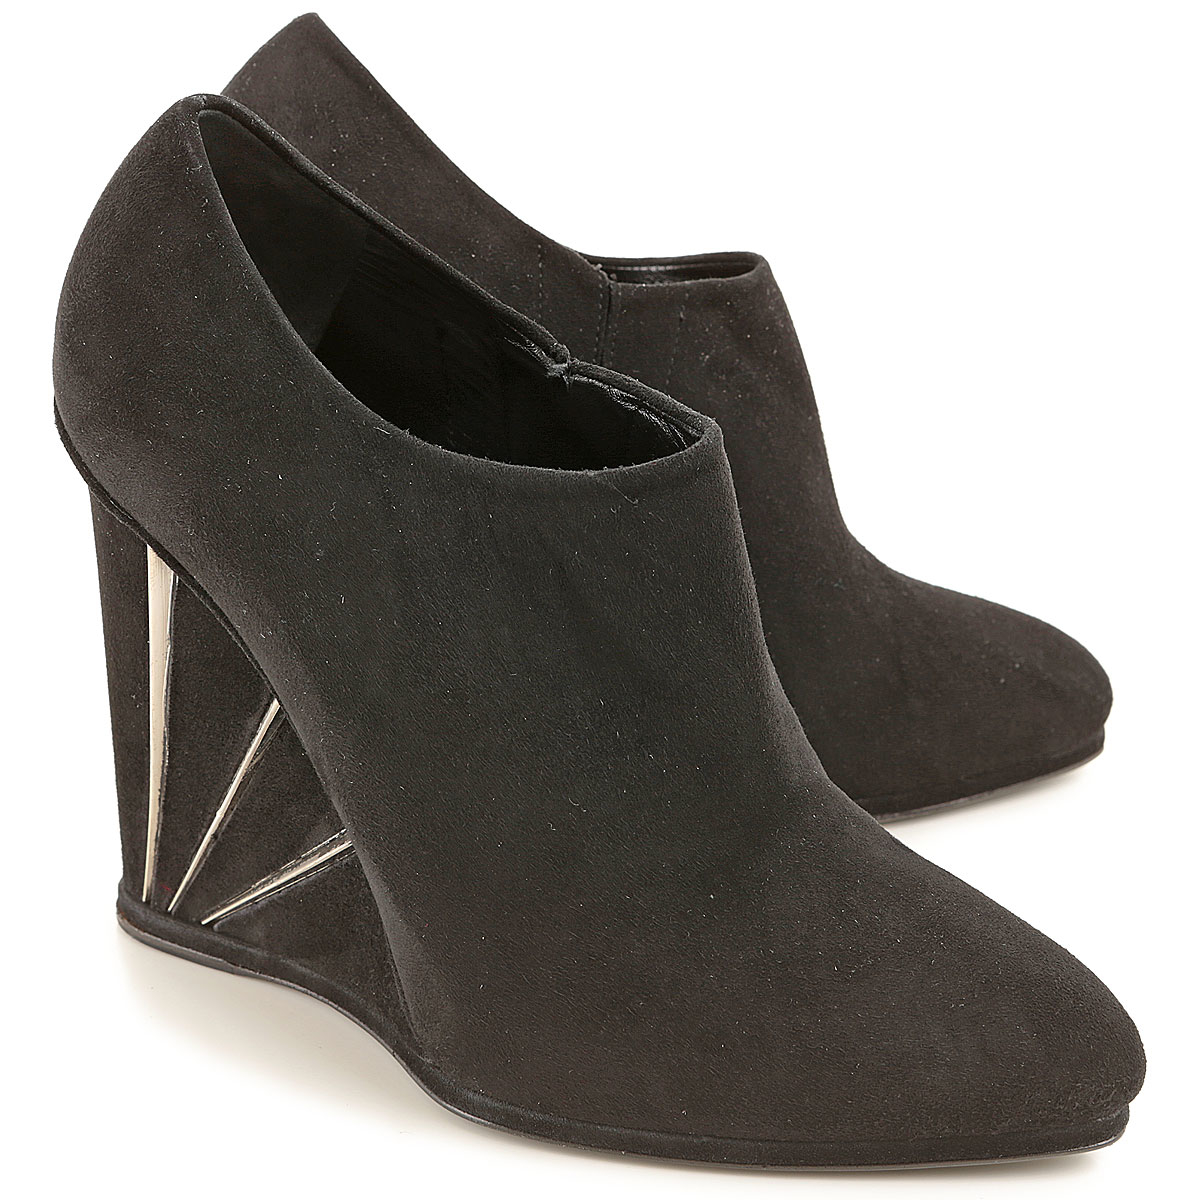 Stuart Weitzman Wedges for Women in Outlet Black Canada - GOOFASH - Womens HOUSE SHOES